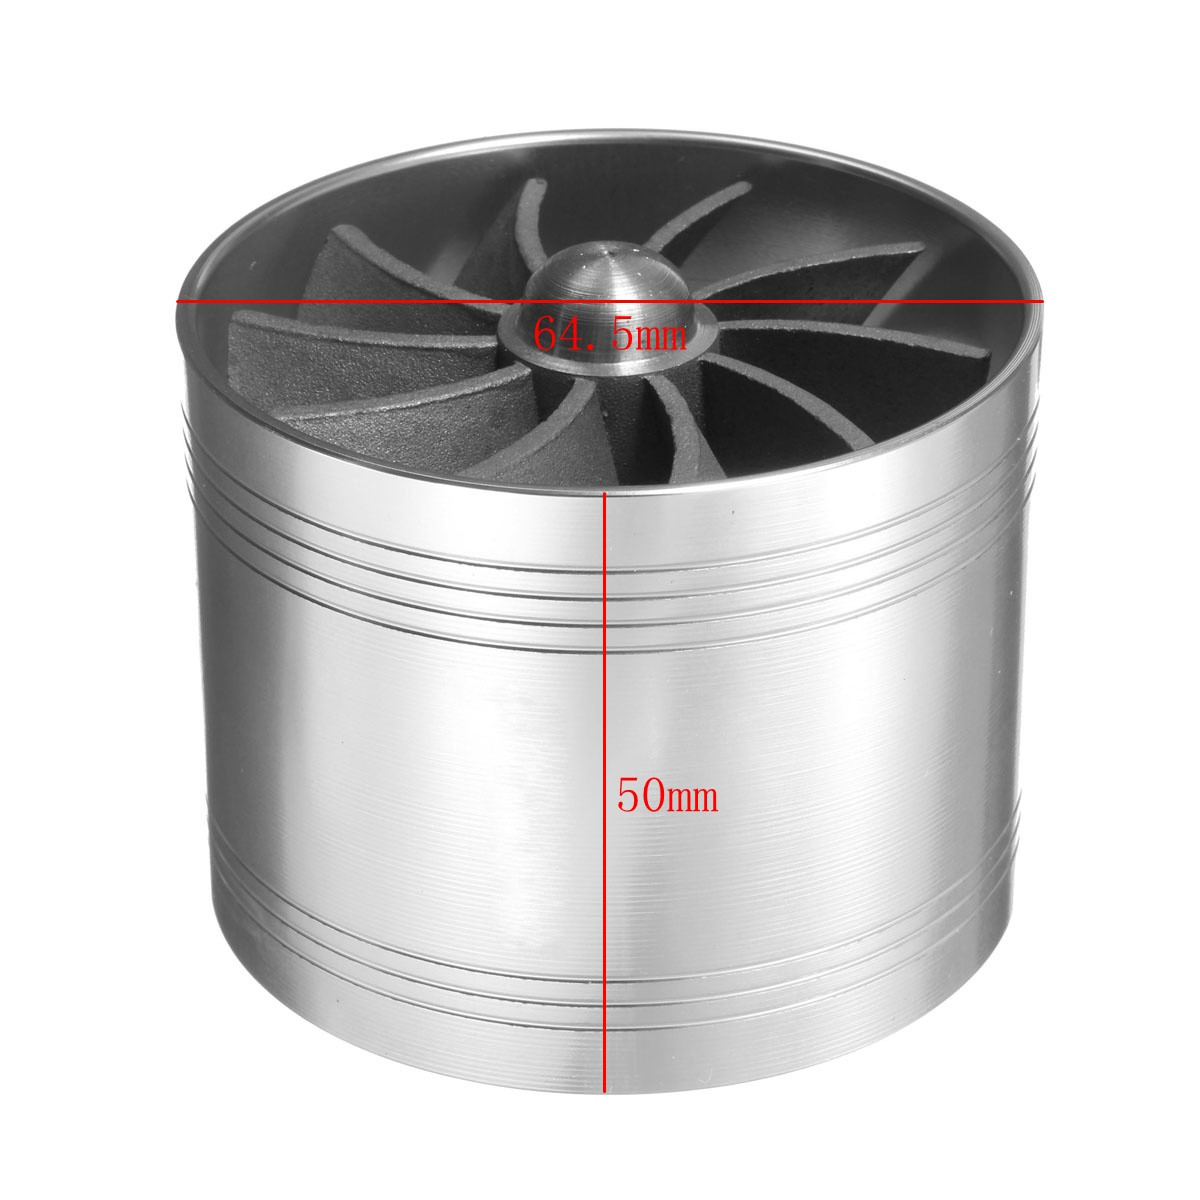 Image 5 - Universal 64.5mm  x 50mm Car Air Filter Intake Fan Fuel Gas Saver Supercharger For Turbine Turbo Charger Turbocharger-in Turbo Chargers & Parts from Automobiles & Motorcycles